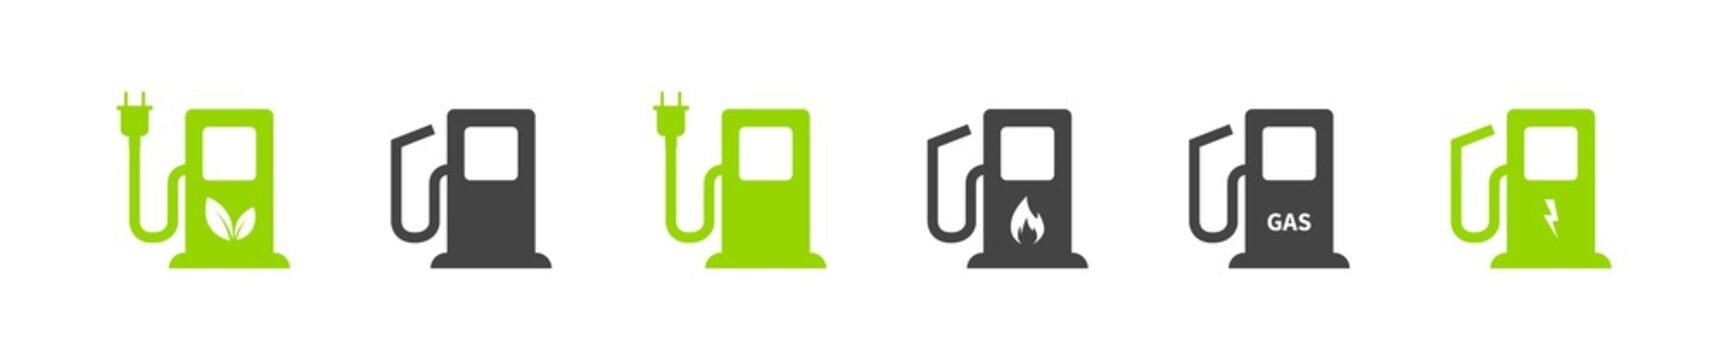 Gas Charger station. Vector illustration. Gas and charging station icon set on white background. Eco battery.